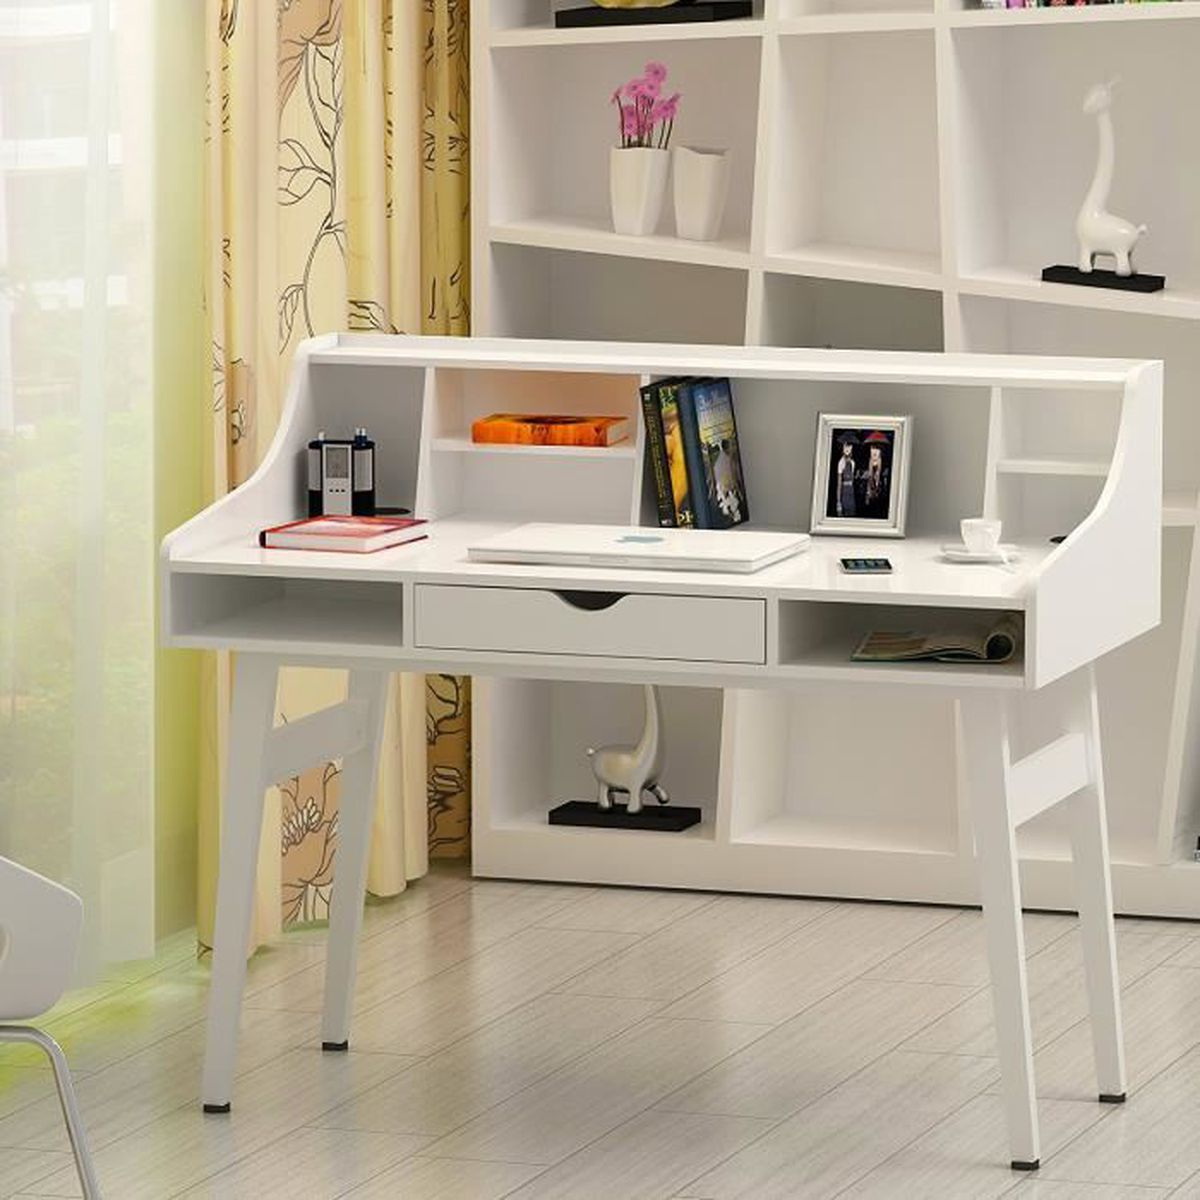 excellent bureau coiffeuse pas cher table coiffeuse achat vente table with bureau coiffeuse ikea. Black Bedroom Furniture Sets. Home Design Ideas